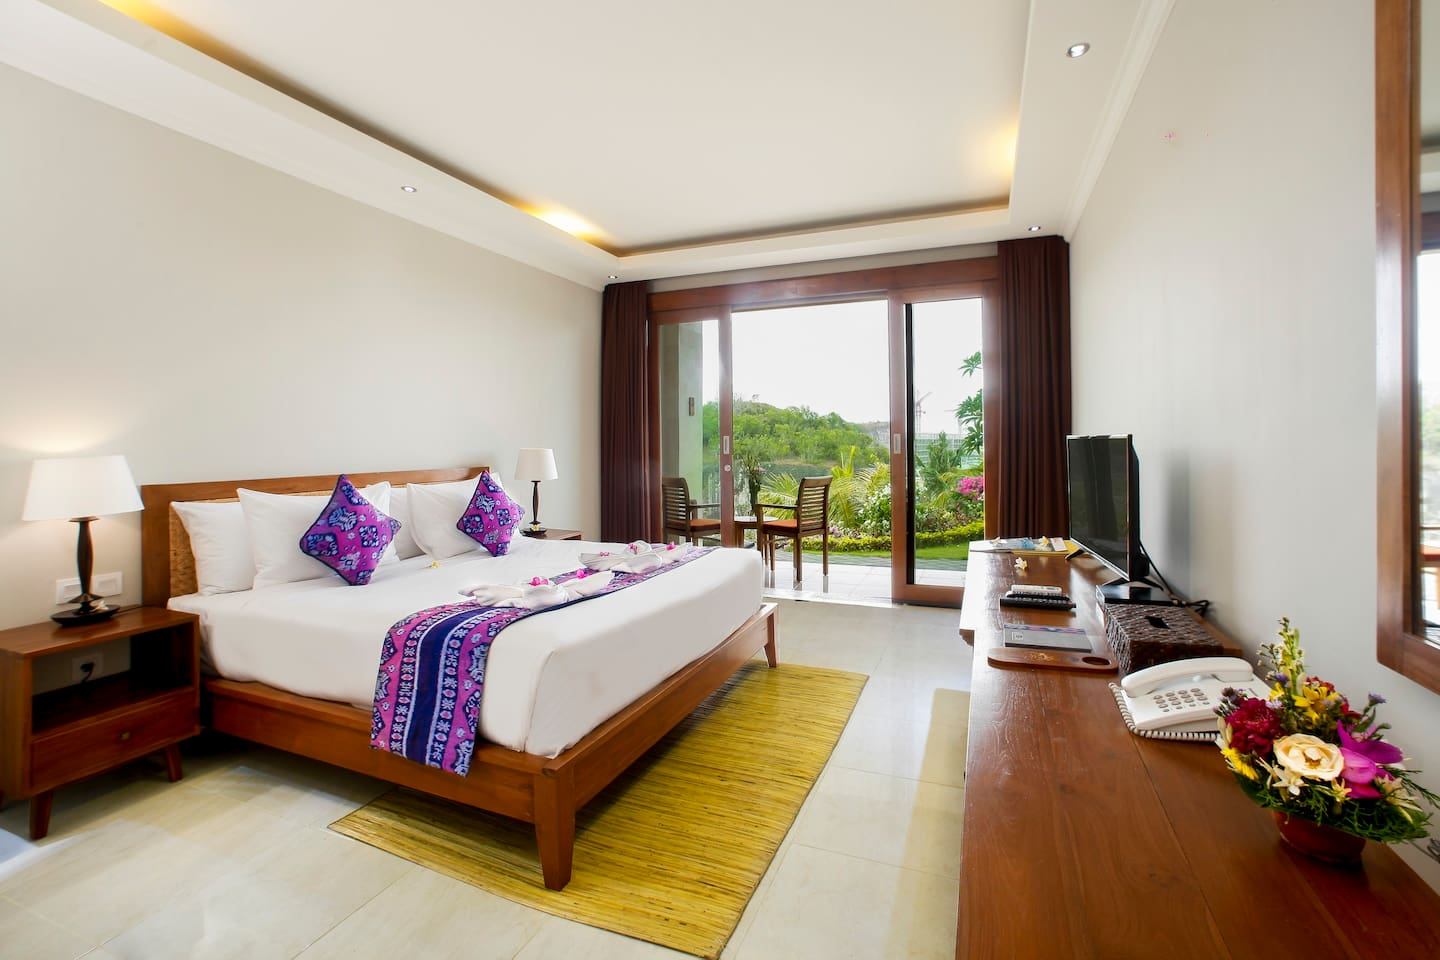 This is Deluxe room at Puri Pandawa Resort. We have 4 unit of this type. The image show us Bedroom, Flat TV,  Telephone, View from the room, chair at the terrace, and other amenities.